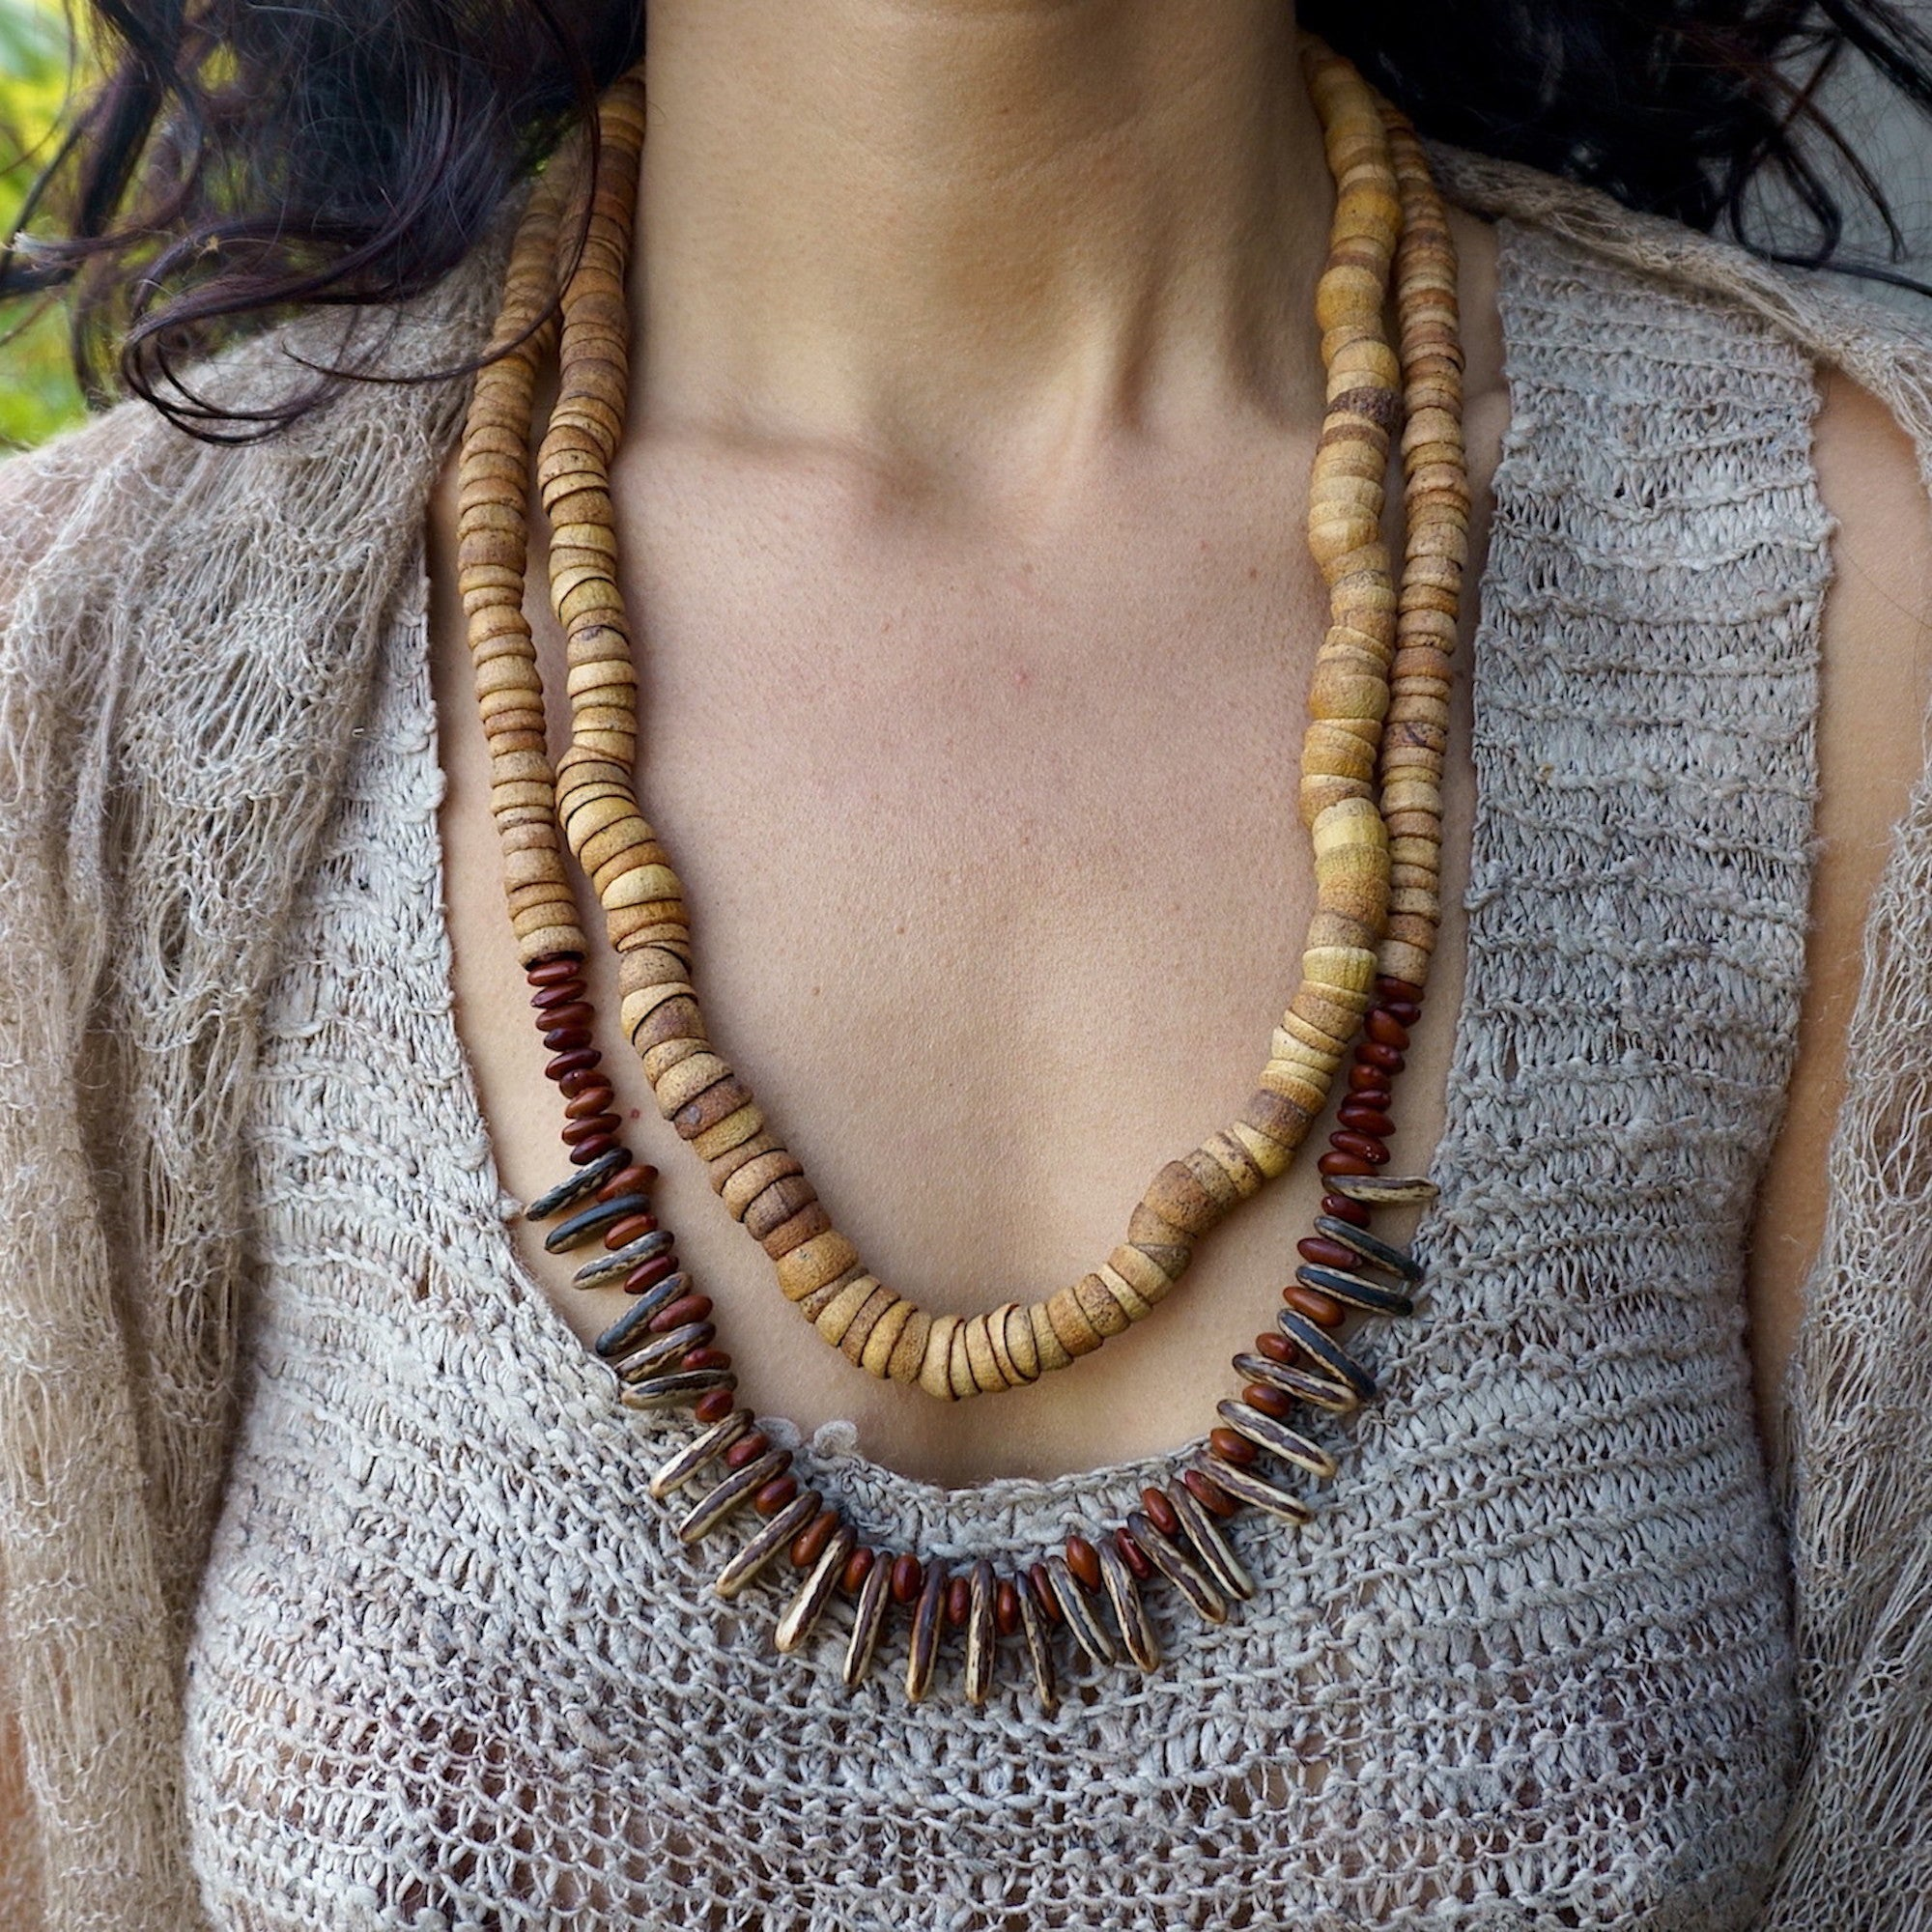 Double Wild Seeds Necklace • Handmade Seeds Necklace